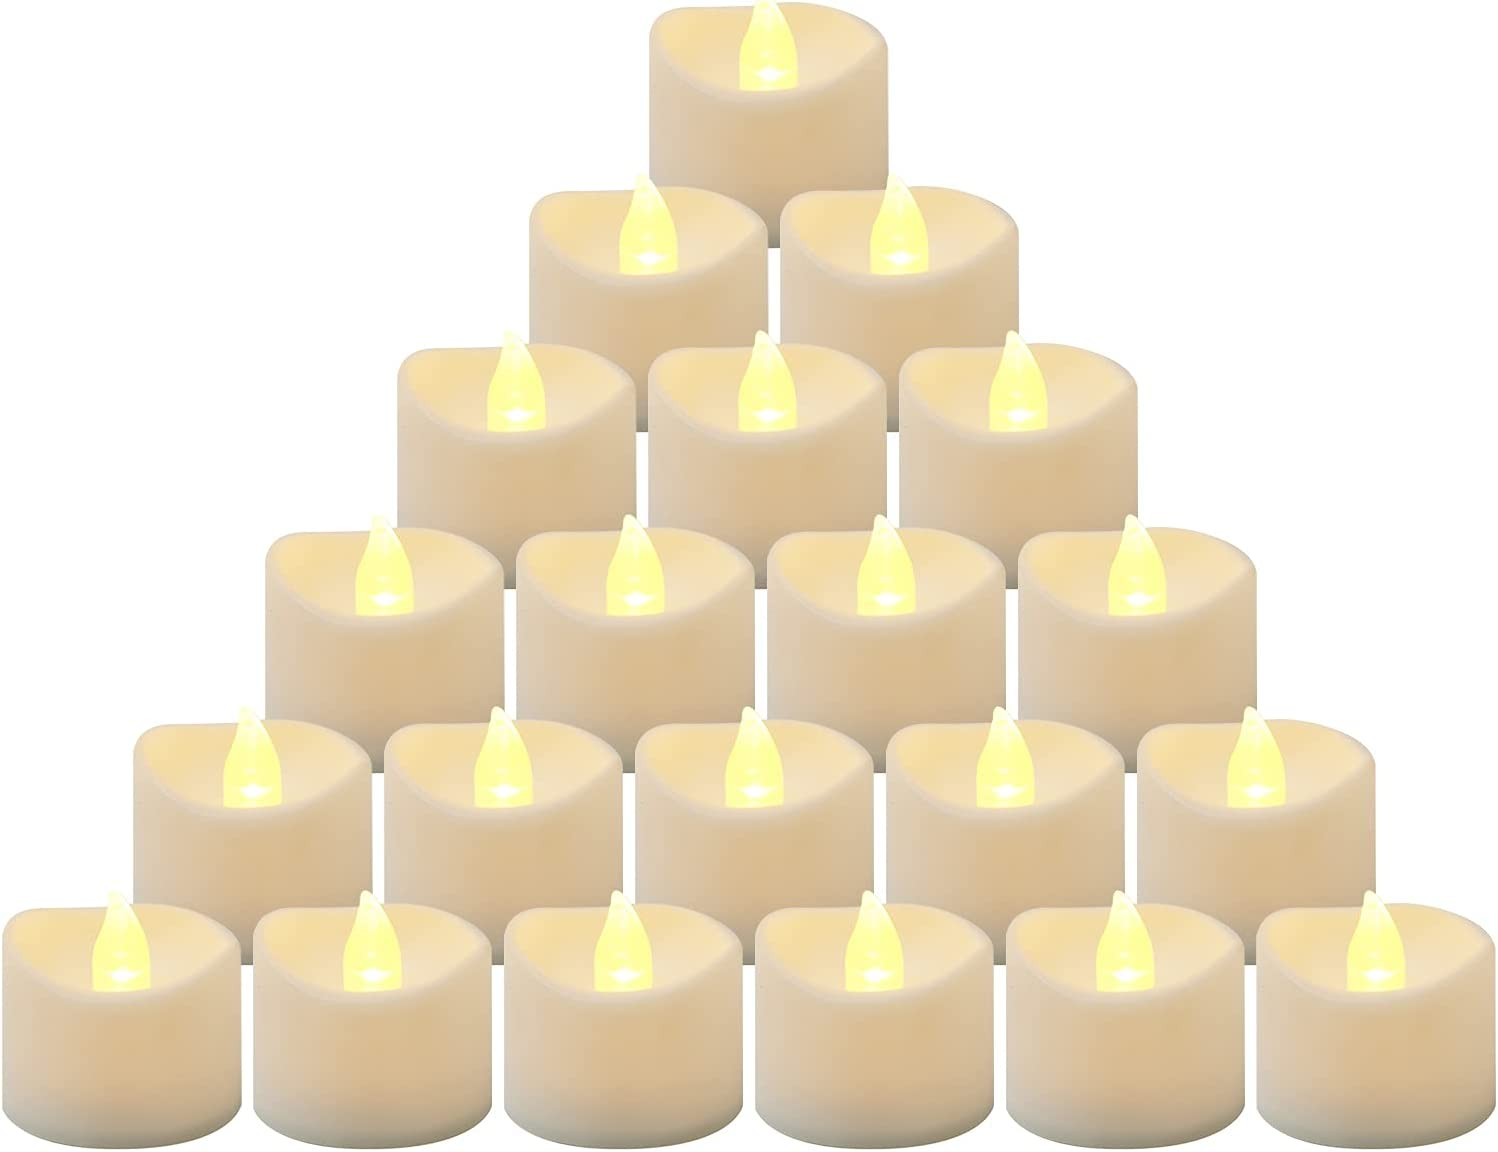 24Pack Flickering Battery Operated LED Tealight Candles, Realistic Electric Fake Candle for Wedding, Table, Gift, for Table Centerpieces, Mood Lighting and Home Decor, Outdoor (Battery Included)